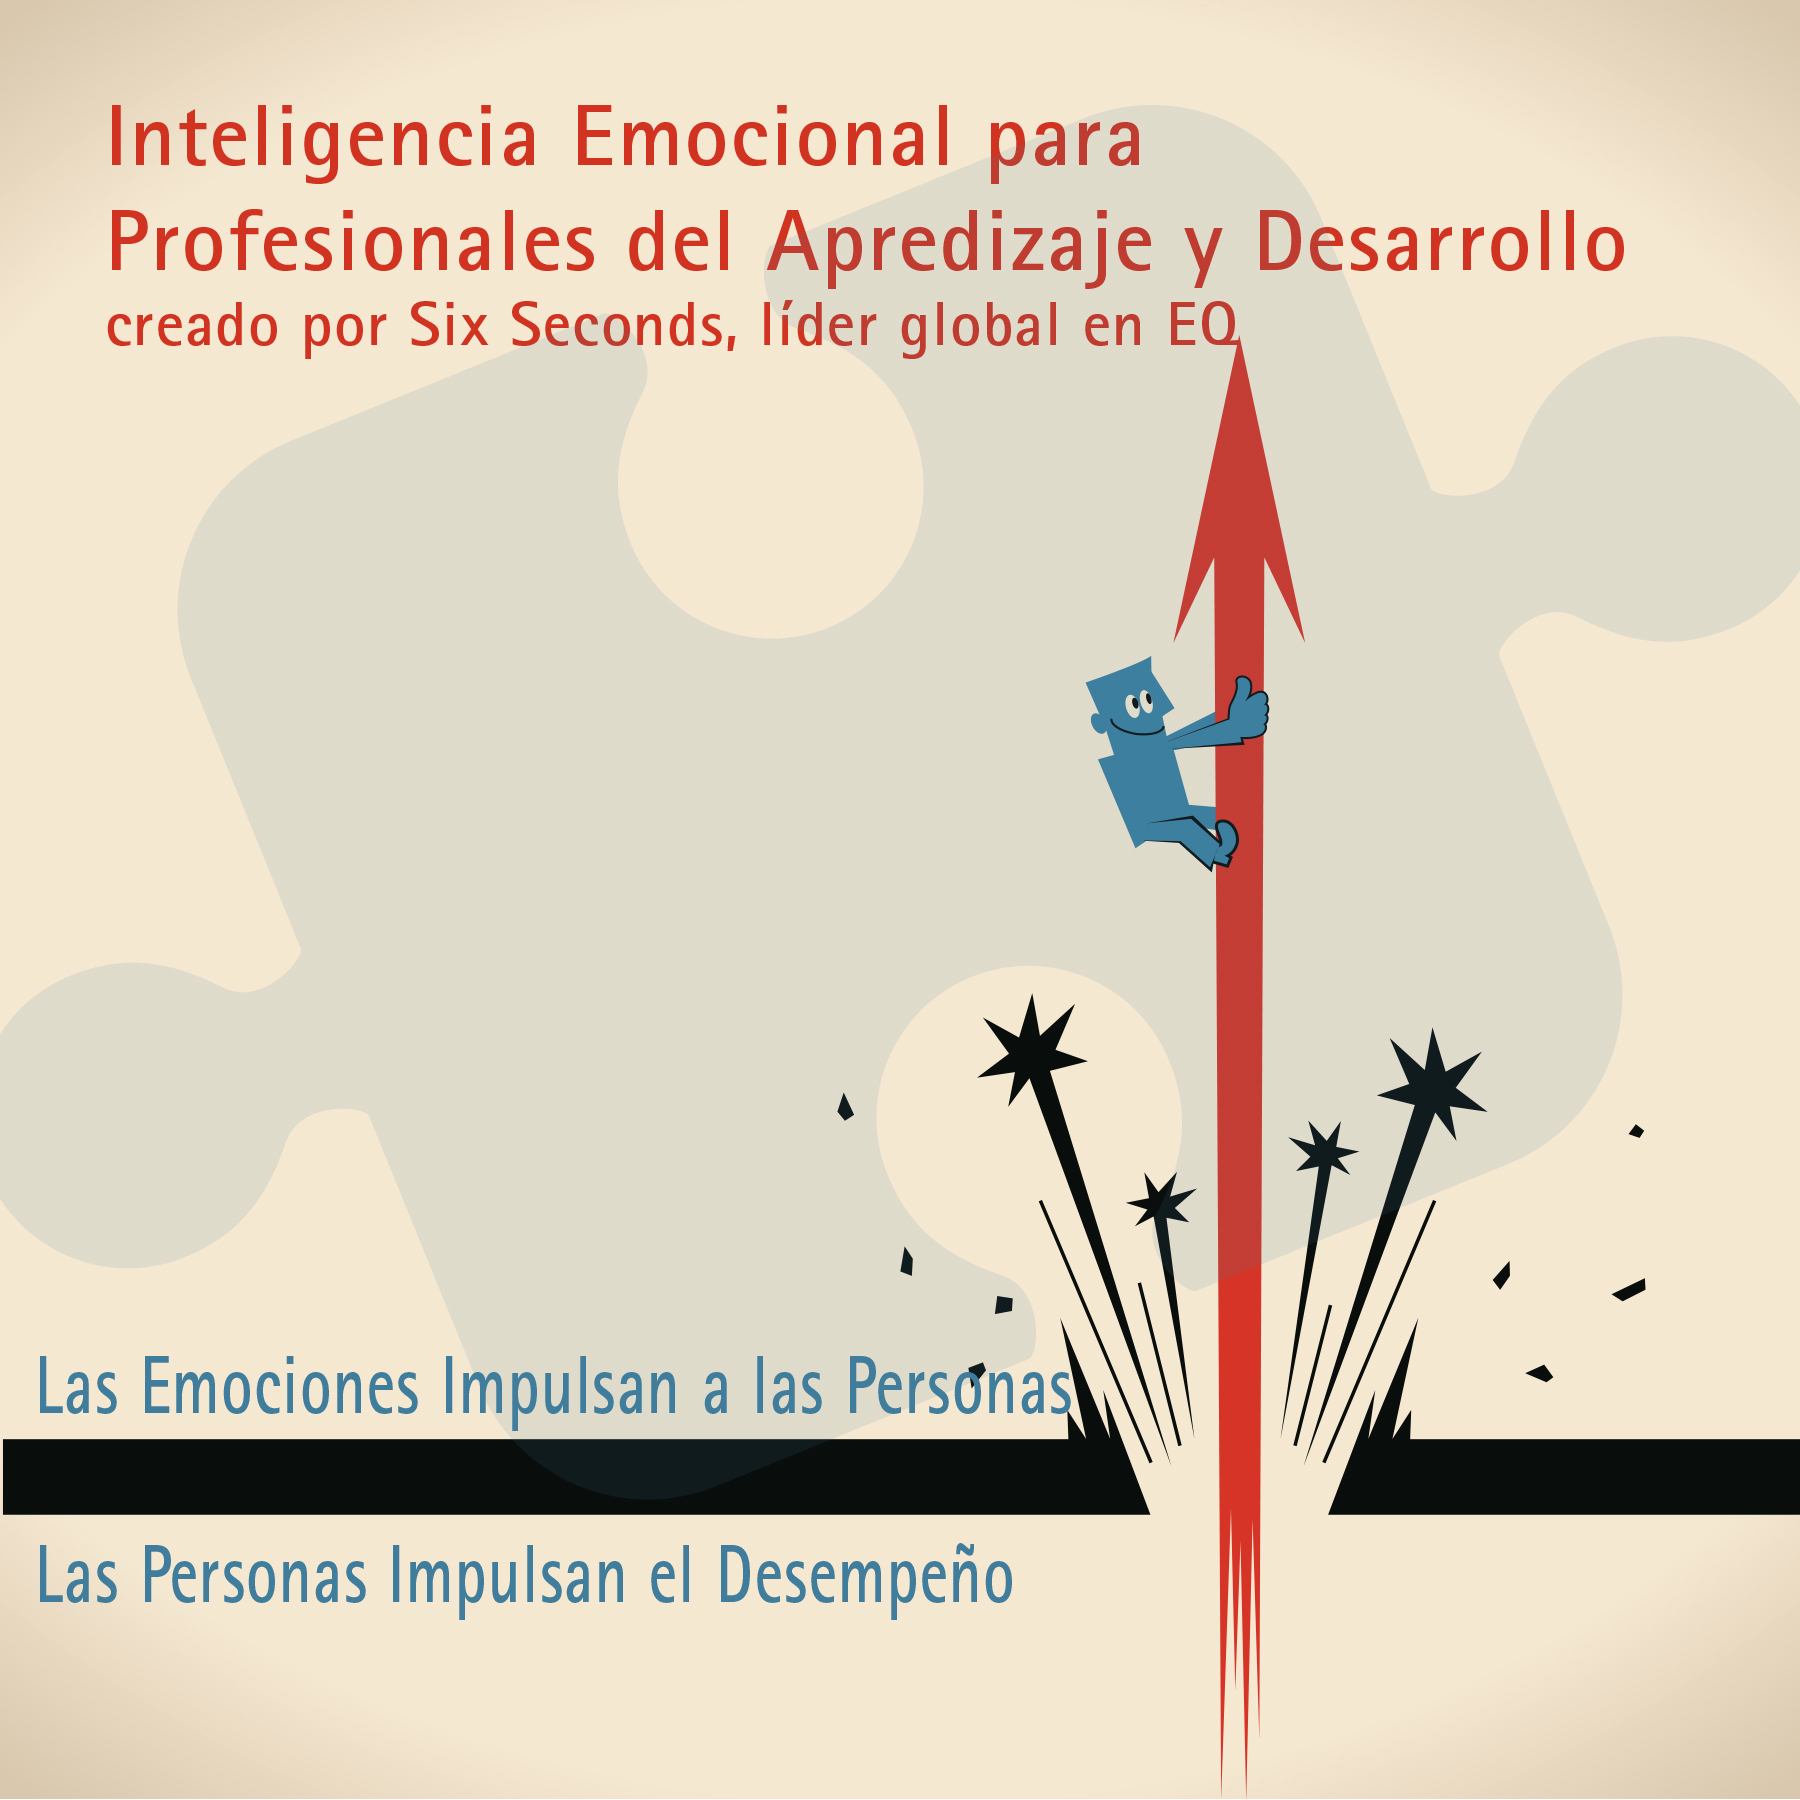 eBook: Emotional Intelligence for Learning & Development Professionals